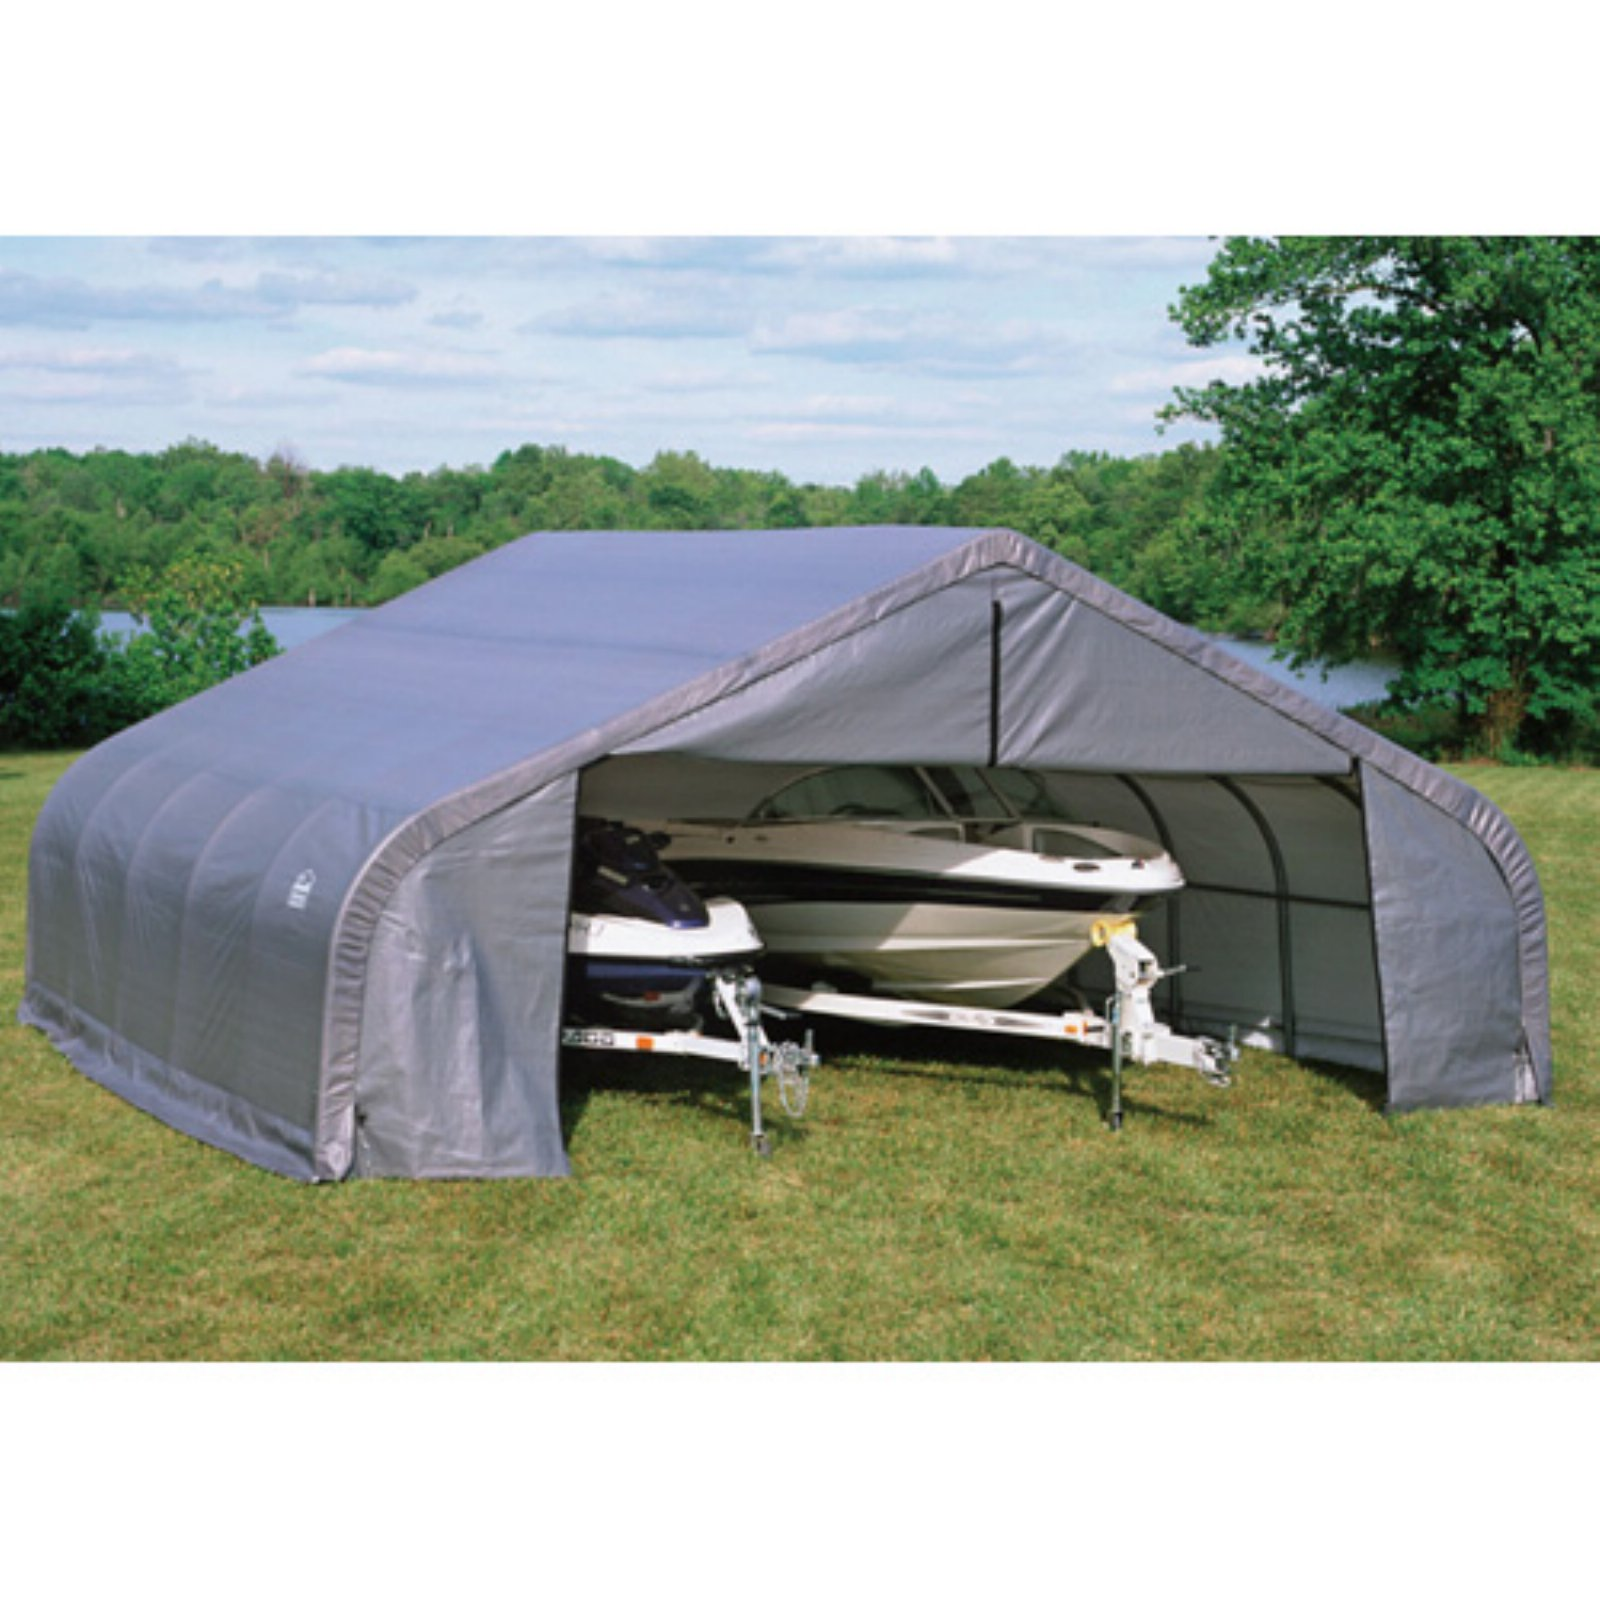 Shelterlogic 22' x 24' x12' Peak Style Shelter, Gray